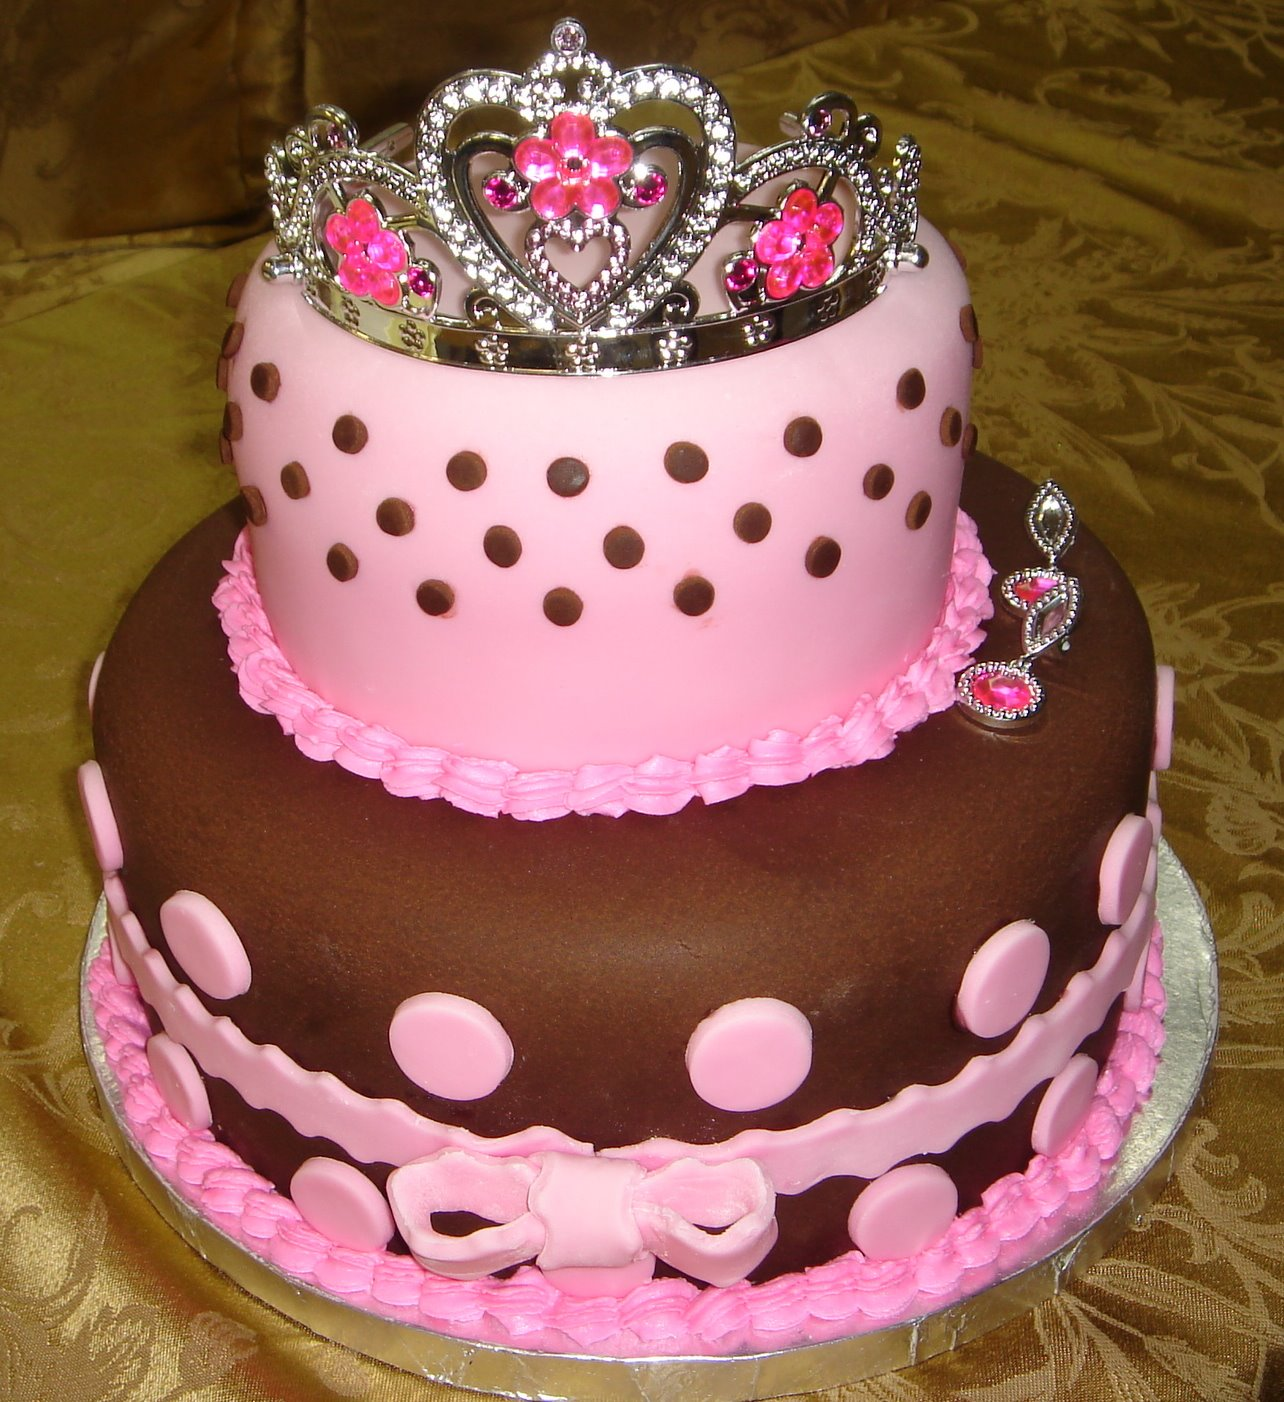 Cake Birthday Kids Fondant Buttercream Princess Castle